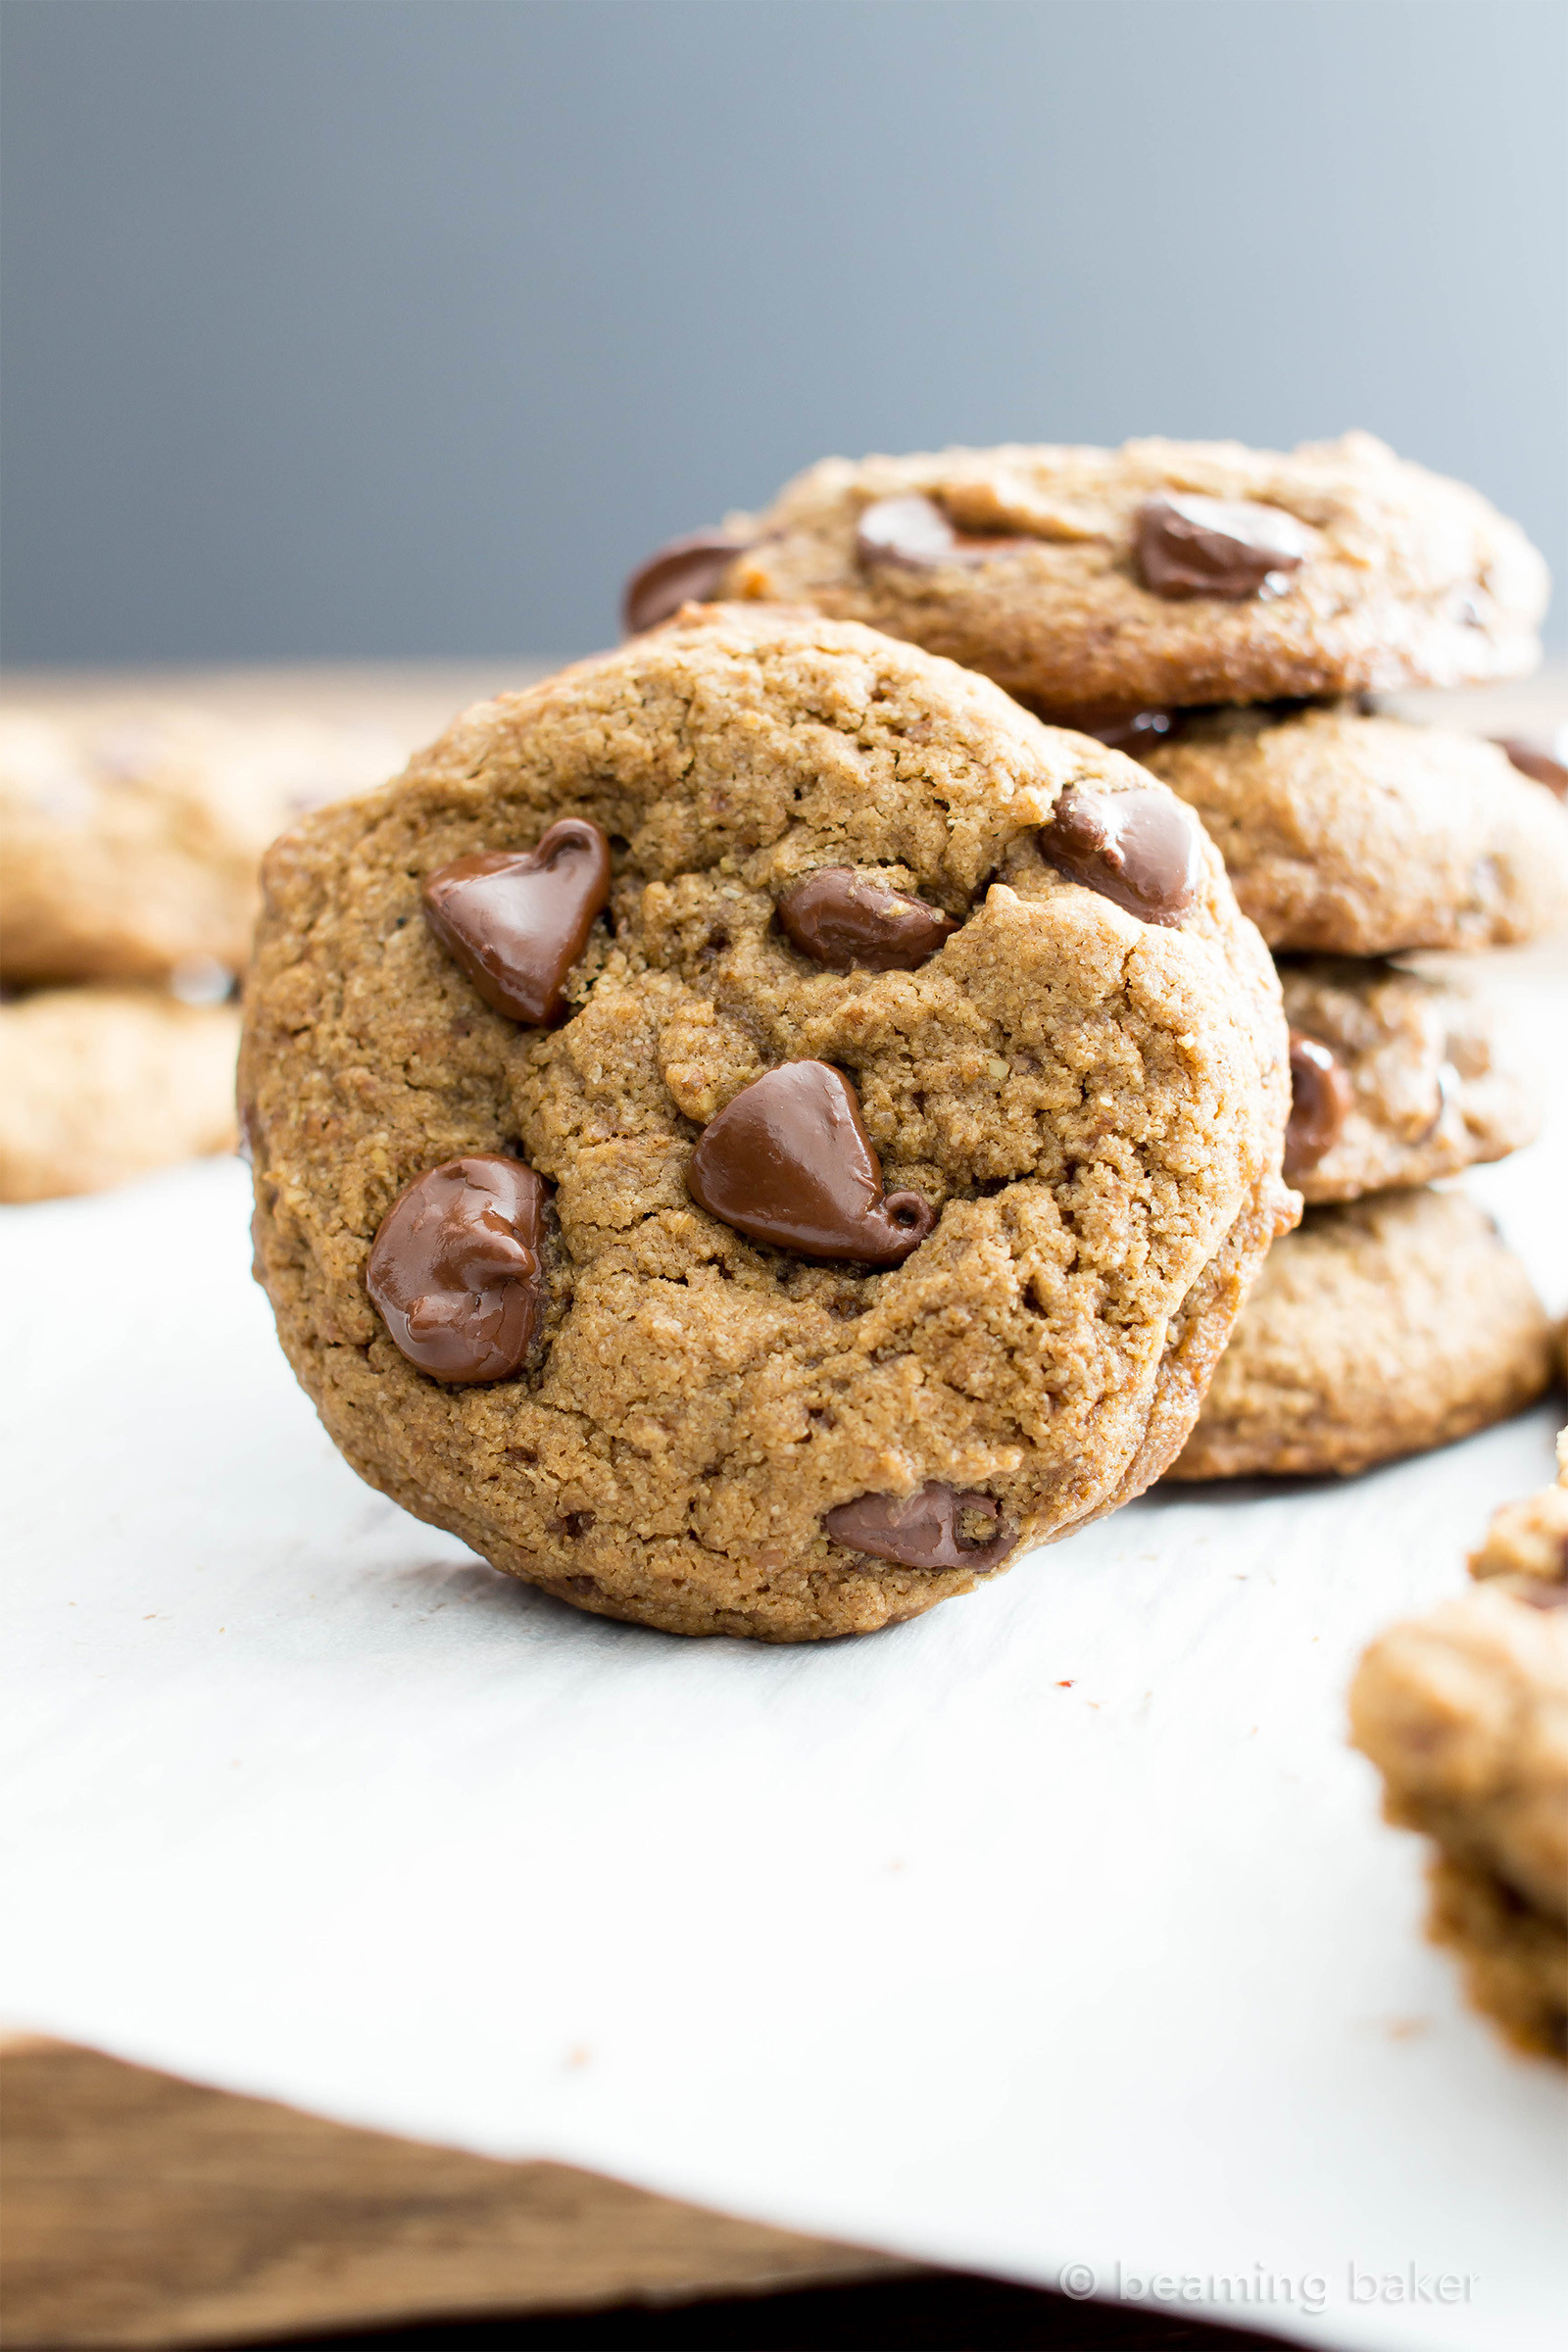 Dairy Free Cookie Recipes  Vegan Chocolate Chip Cookies Recipe Gluten Free Dairy